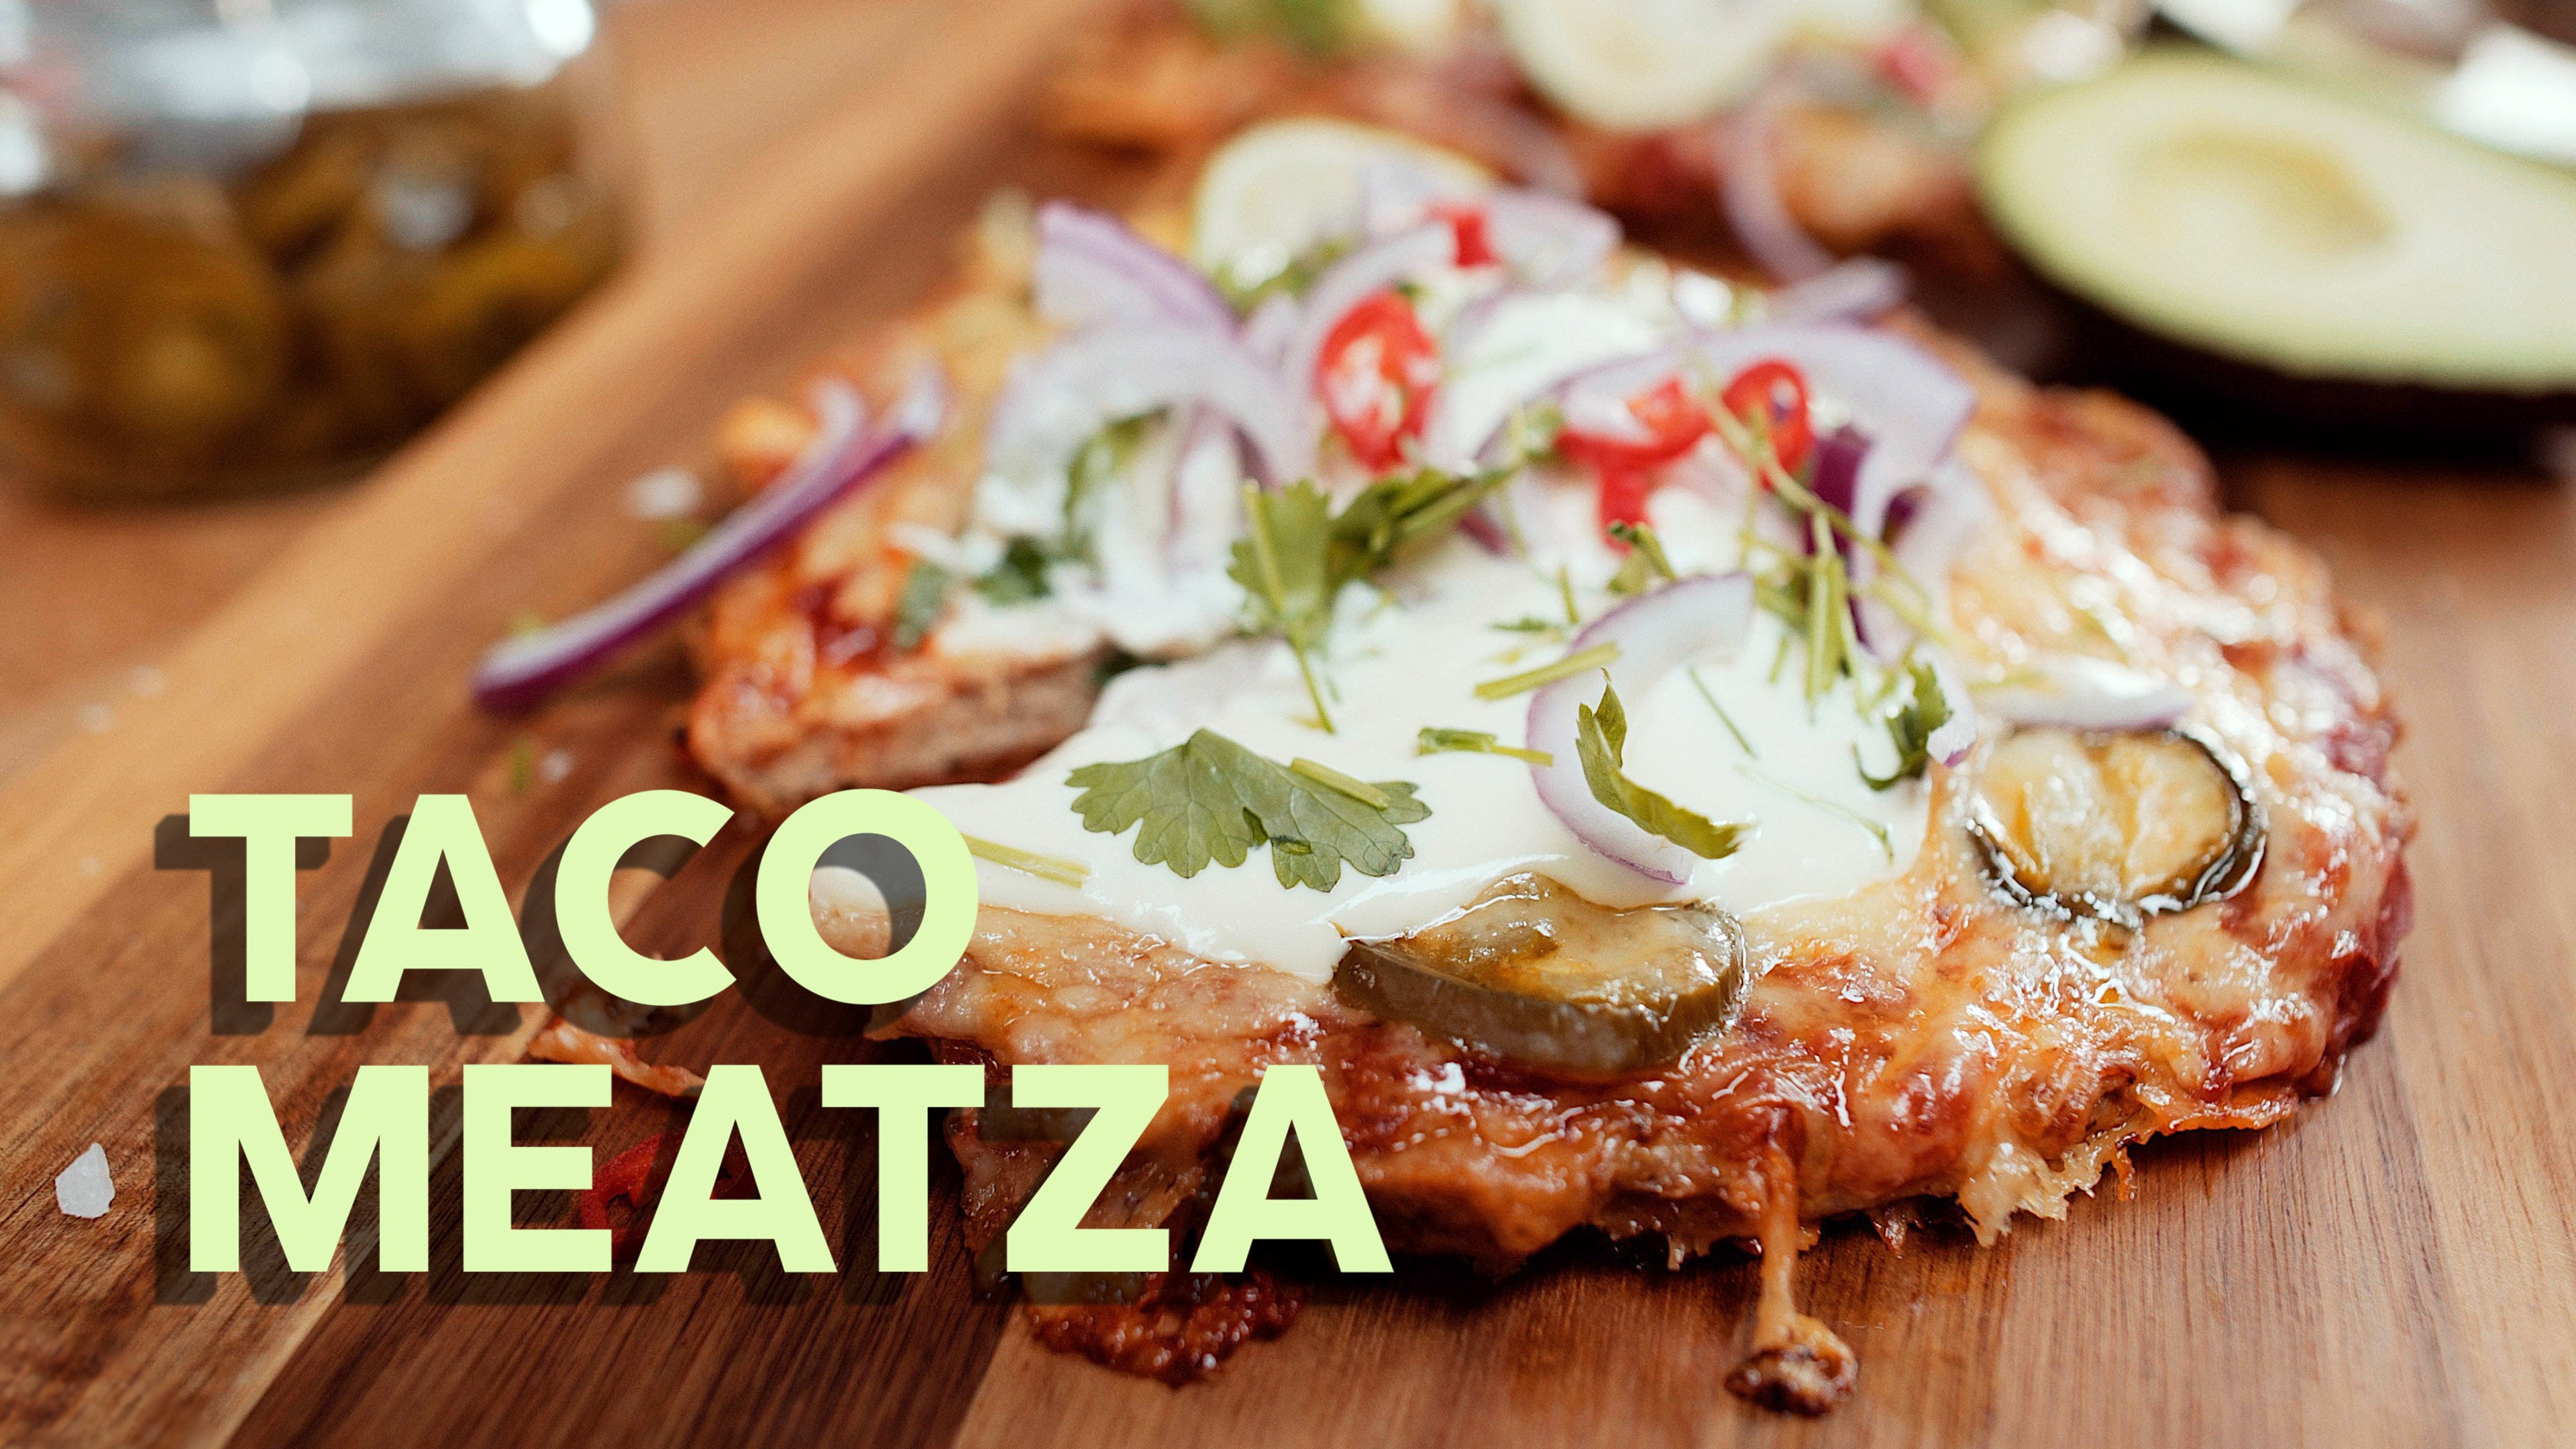 Keto taco meatza cooking video